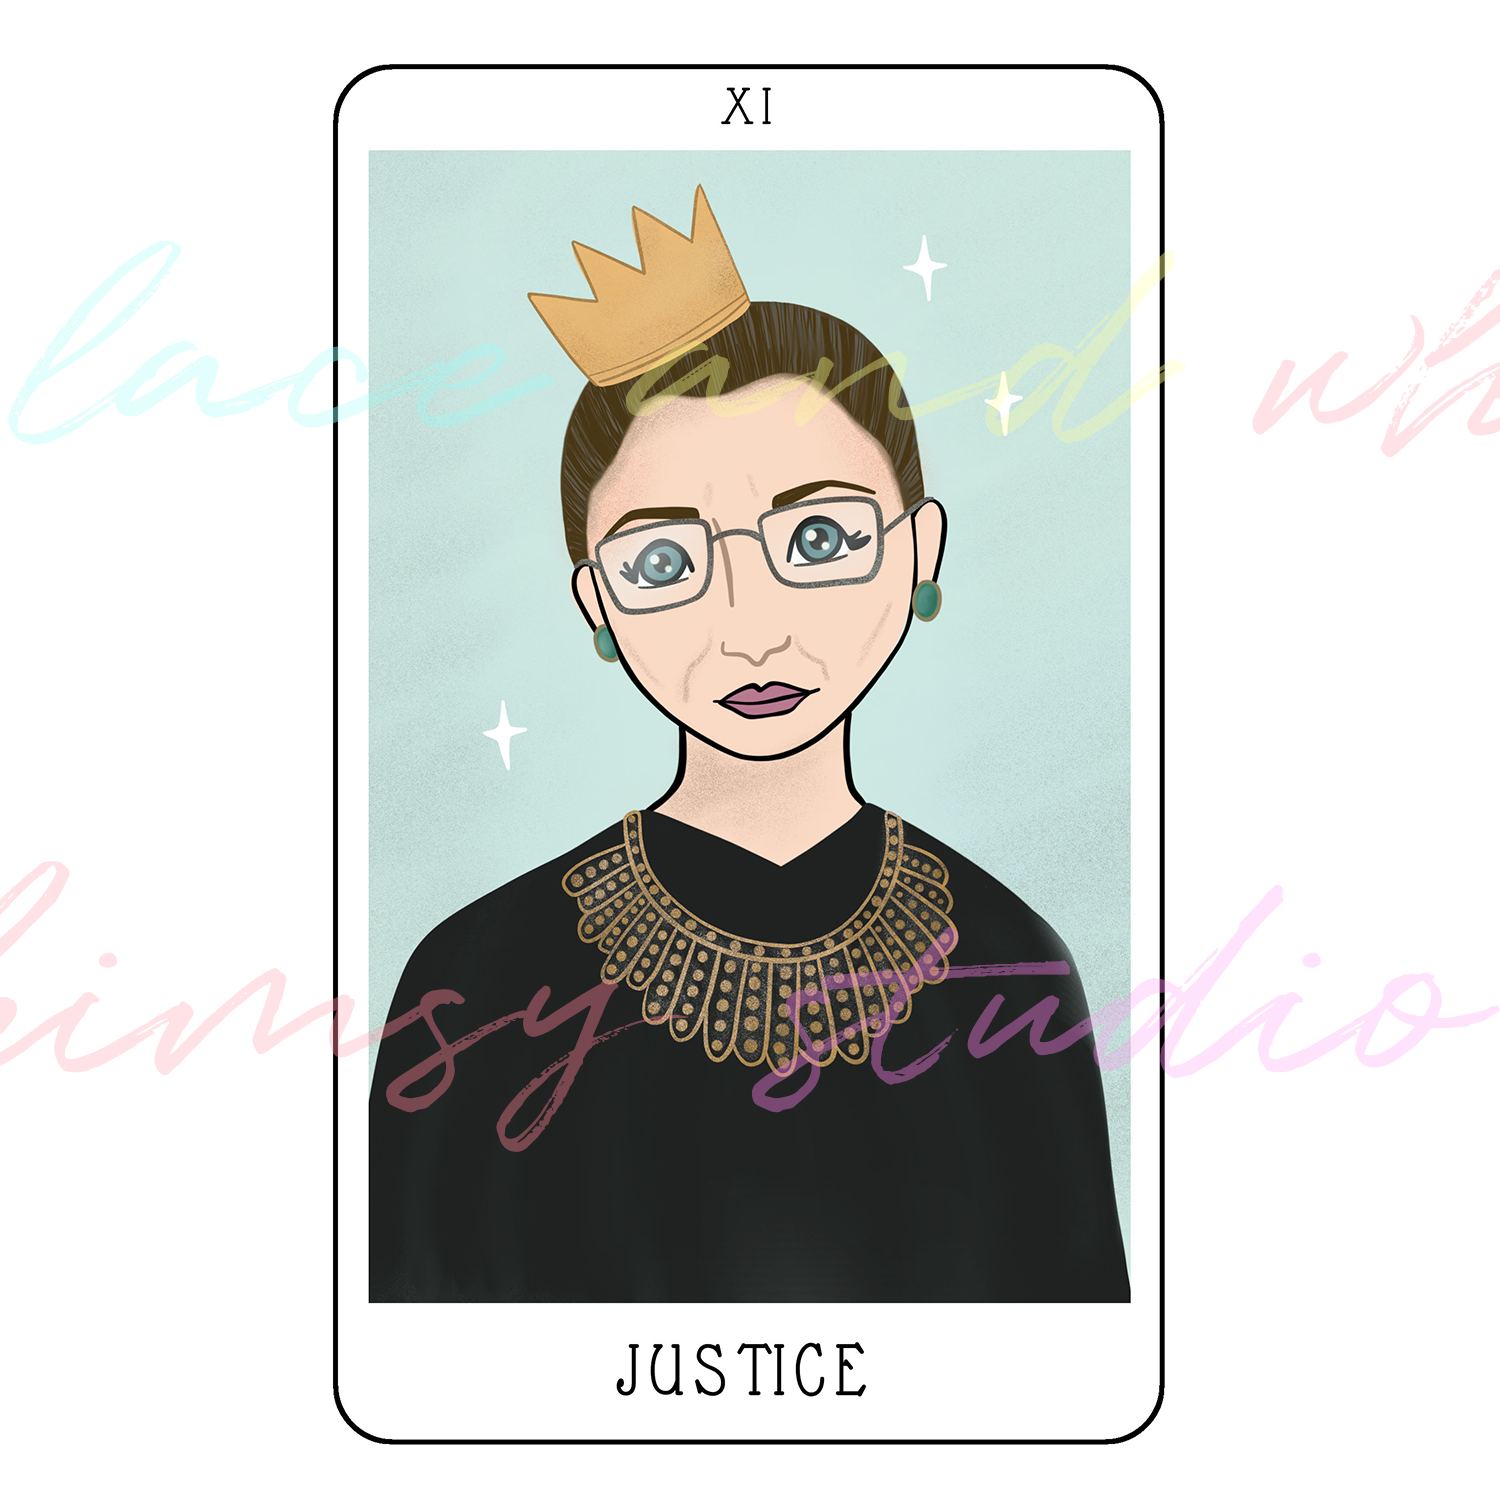 tarot-cards-illustration-series-2018-laceandwhimsy-kathy-d-clark-Justice.png